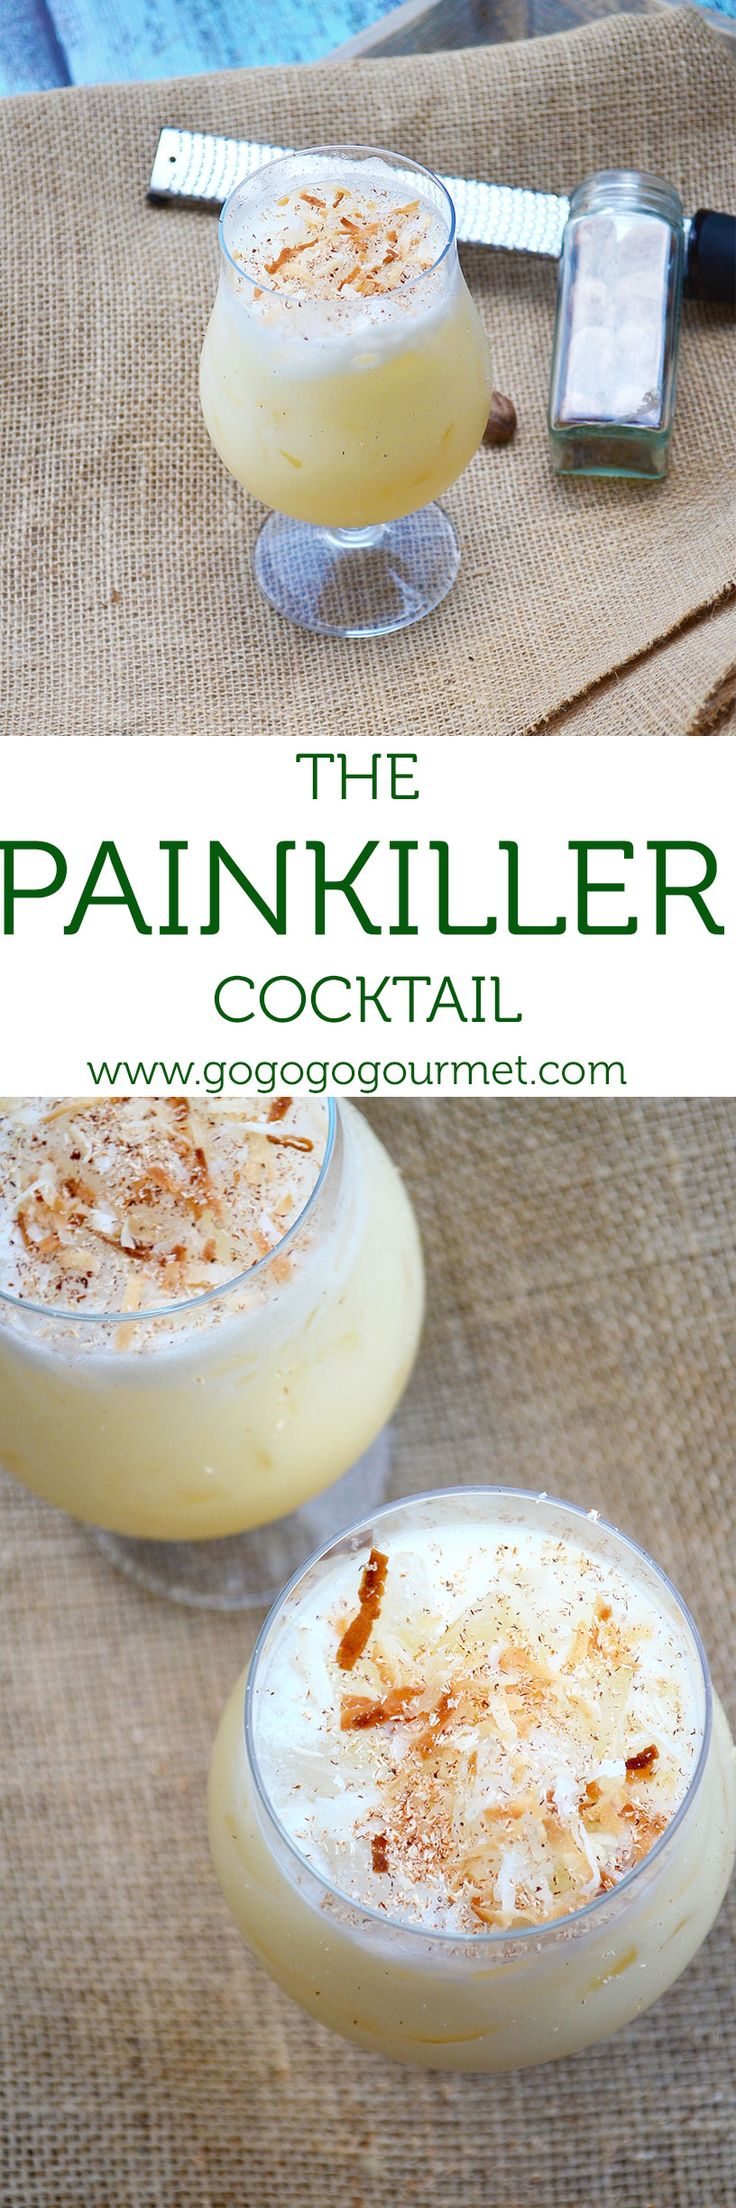 This Painkiller Cocktail is totally out of this world- rum, coconut, orange and pineapple form a little taste of the tropics. | Go Go Go Gourmet Go Go Go Gourmet